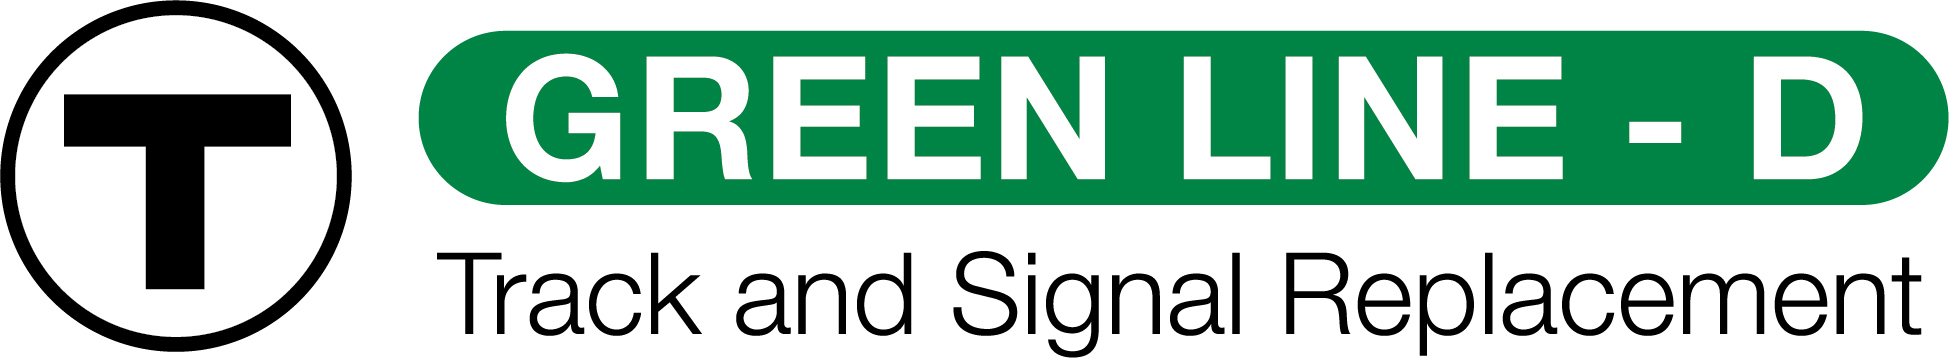 Green Line D Branch Track and Signal Replacements project